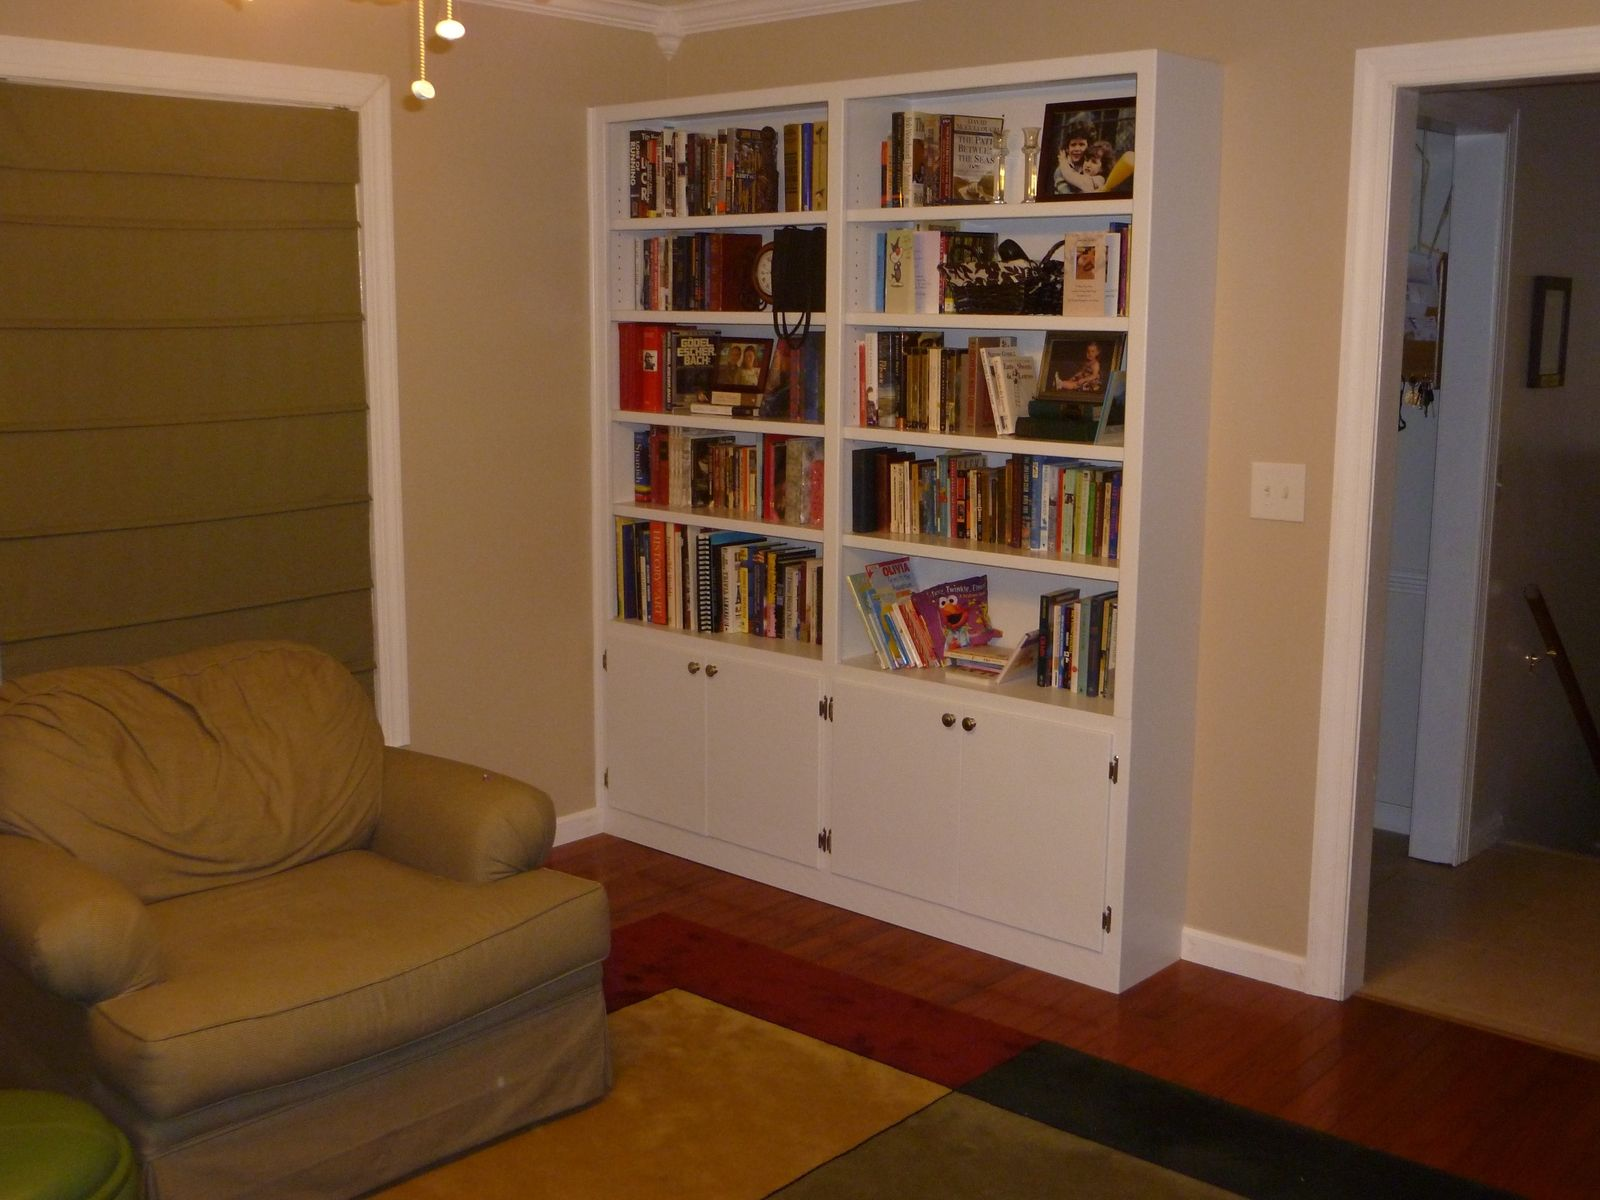 their depths of wall ceiling floor universal vits bookshelves around radiator a shelf bookcase way door gb book to find system gallery and shelves mounted shelving